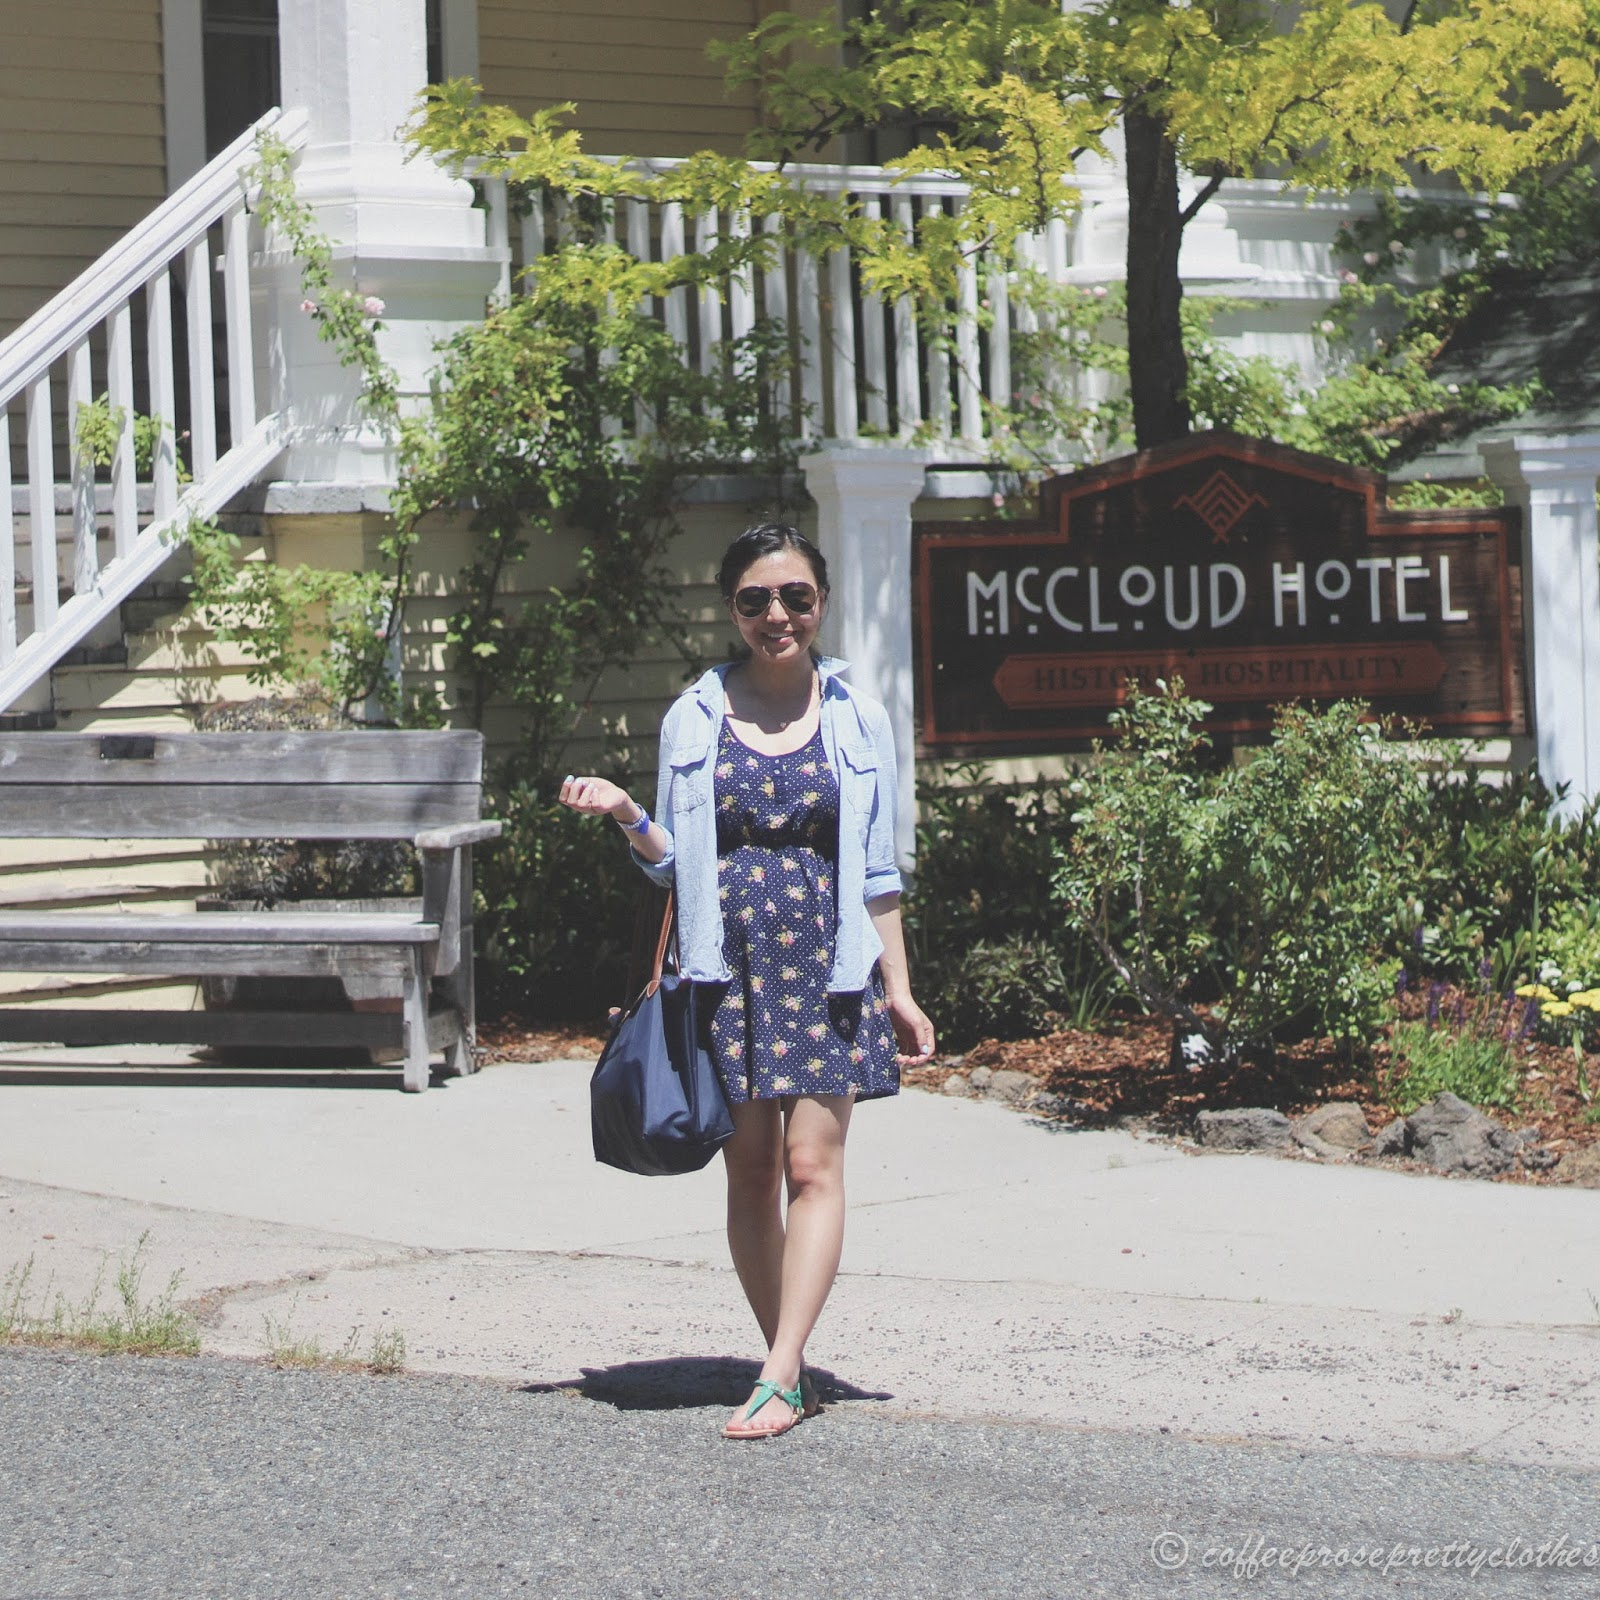 Floral Dress with Chambray Shirt at the McCloud Hotel